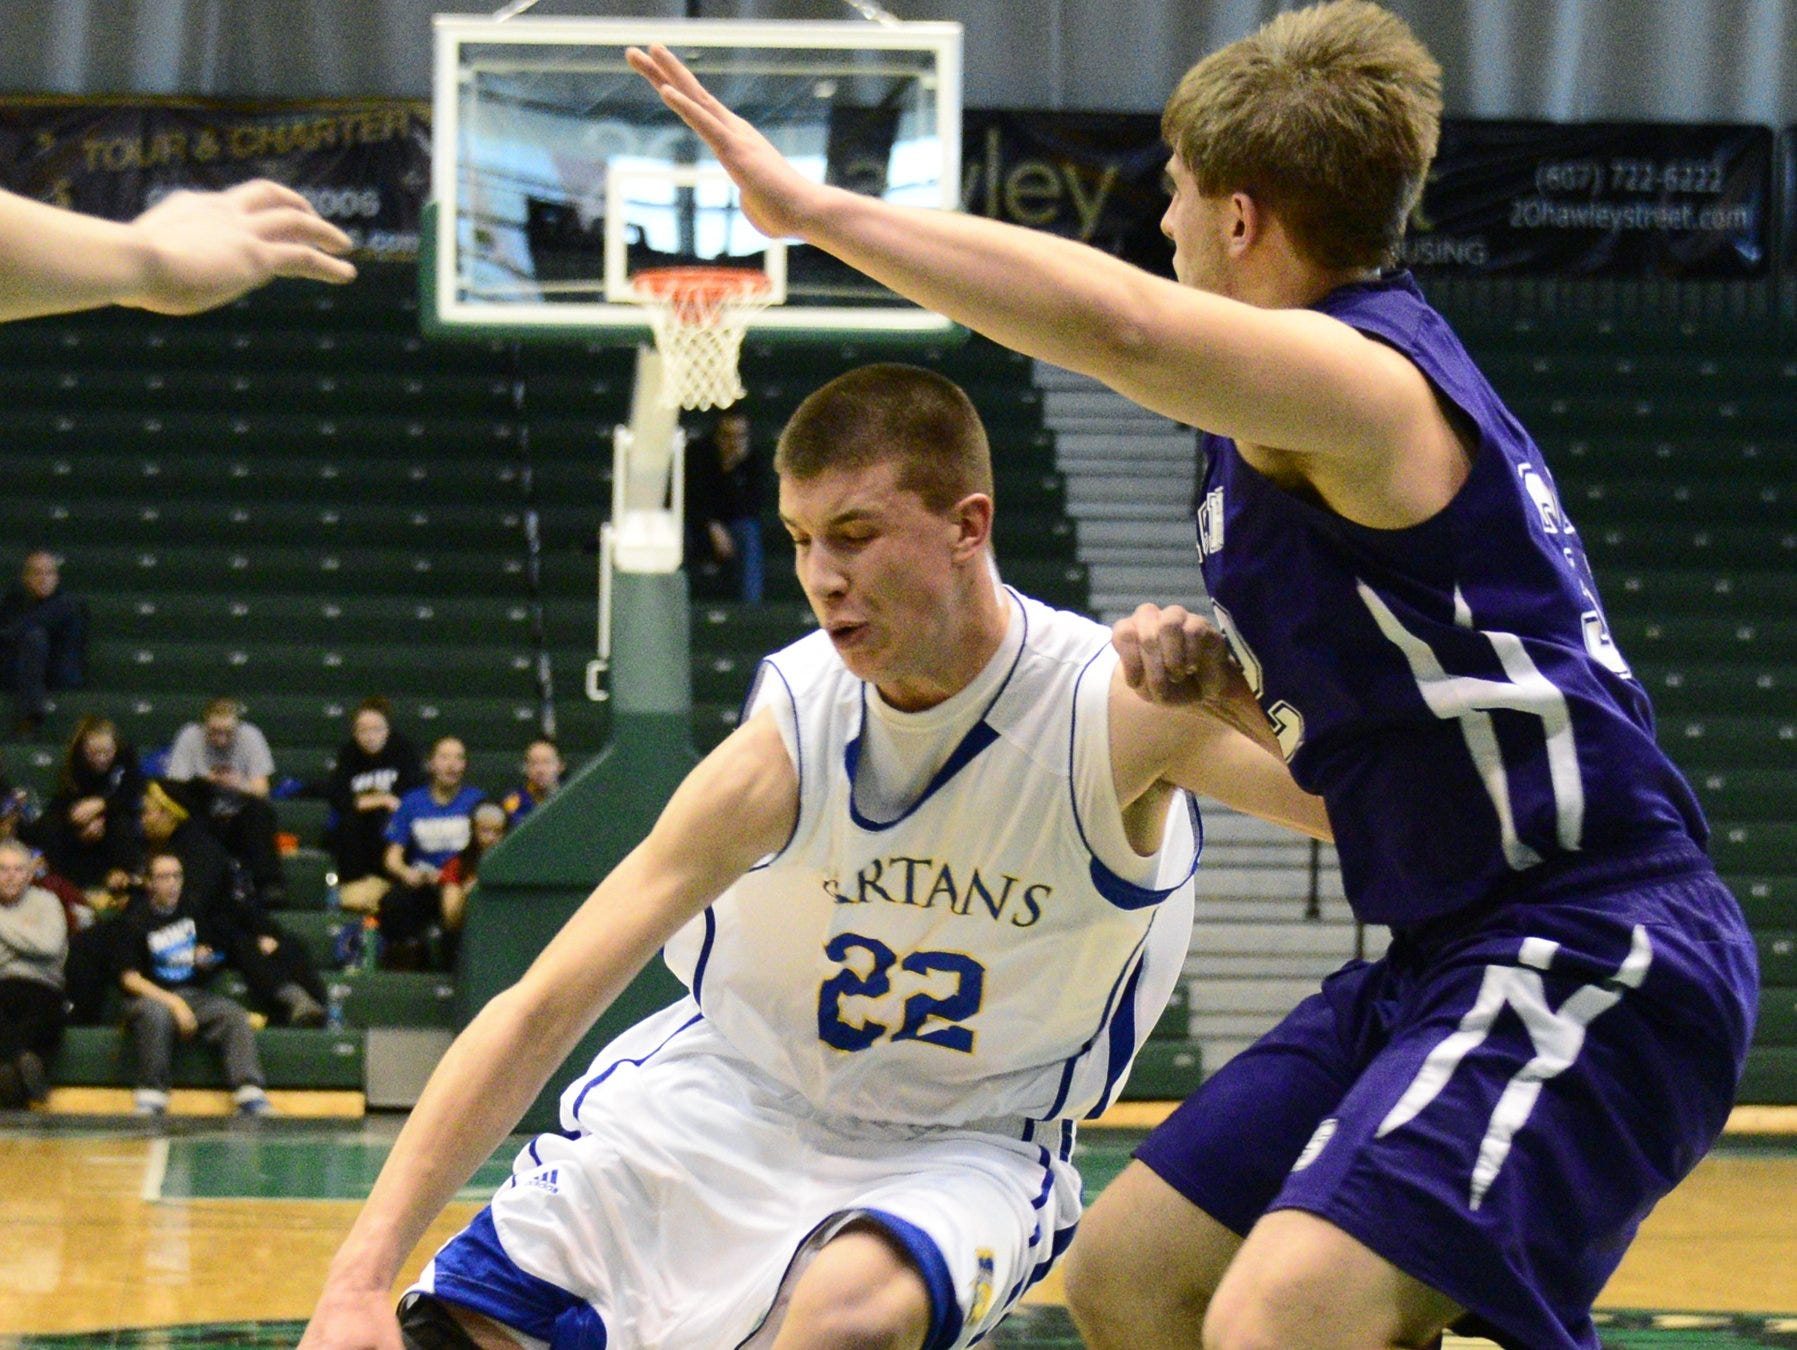 2013: Jake Sinicki of Maine-Endwell moves around Grant Brightman of Norwich in the first half of the STAC boys championship game held at the Events Center at Binghamton University.